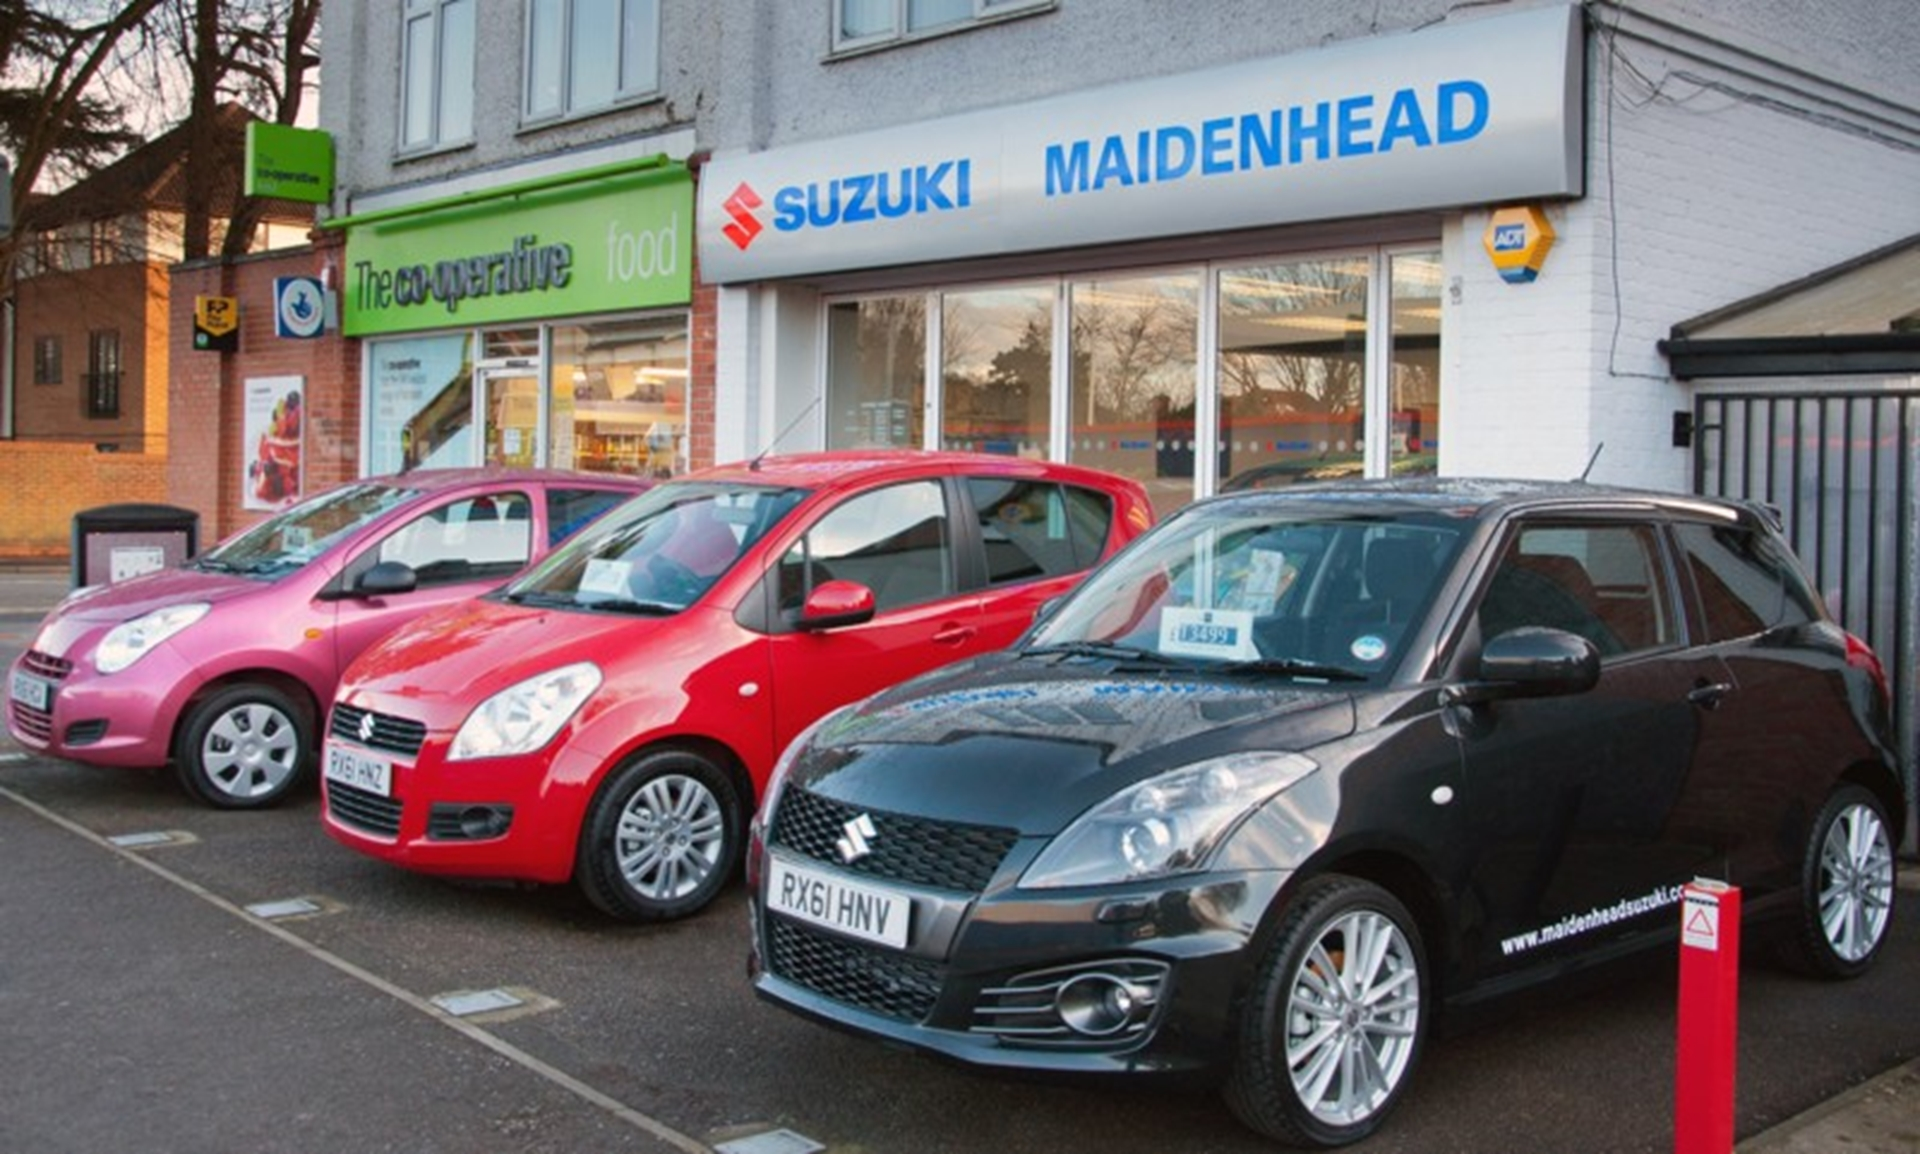 Maidenhead Suzuki opens for business